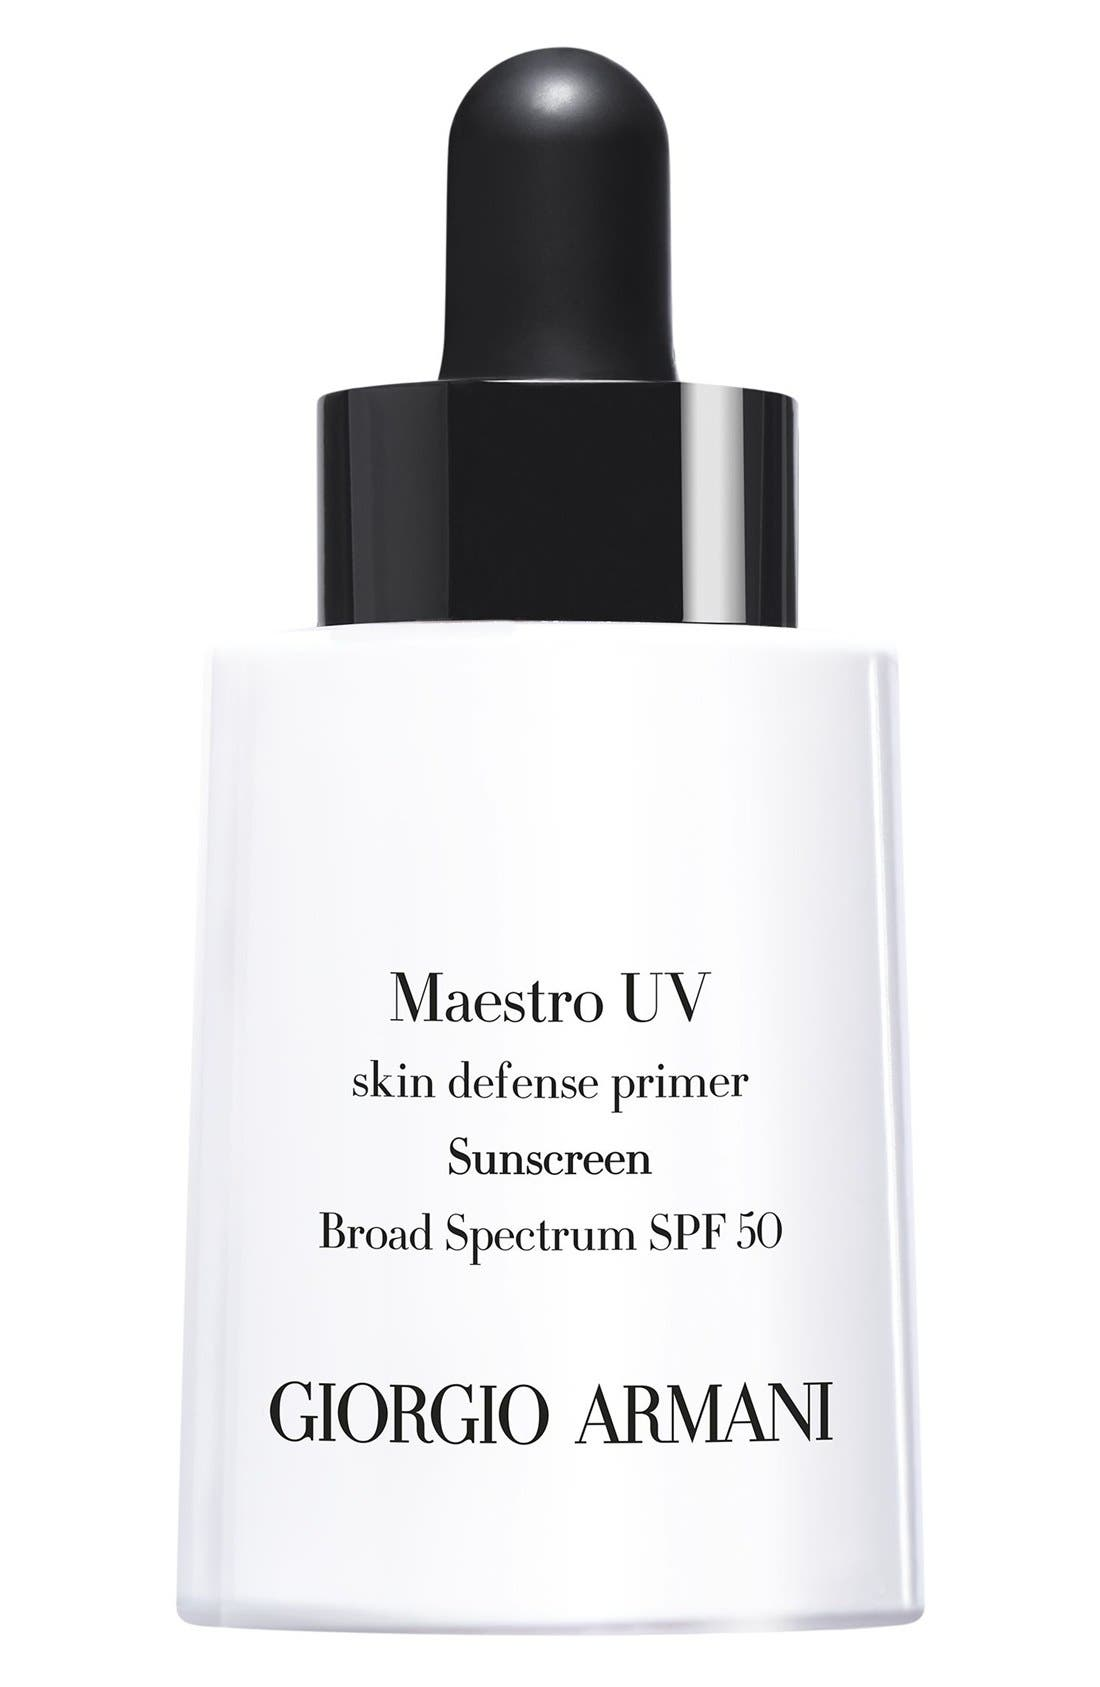 Giorgio Armani 'Maestro UV' Skin Defense Primer Sunscreen SPF 50